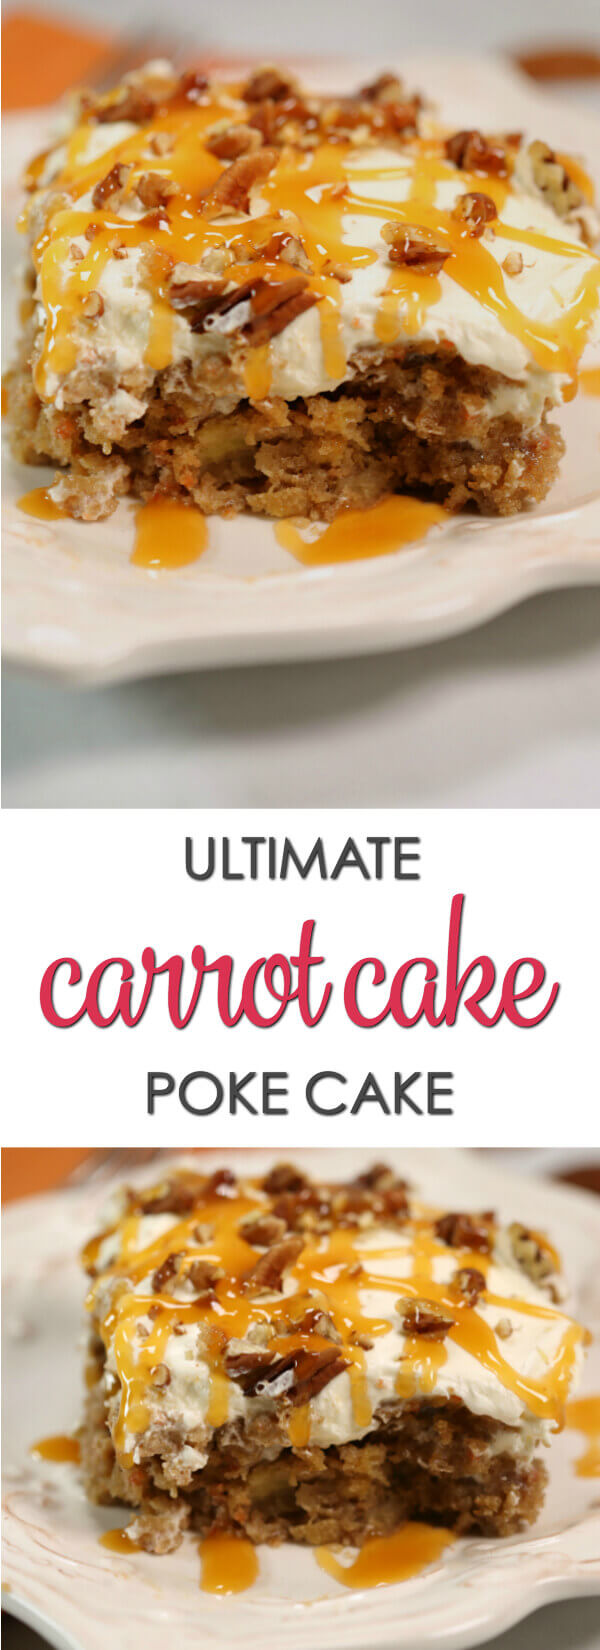 This Ultimate Carrot Cake Poke Cake is one of my favorite easy poke cake recipes. It's decadent, delicious and very easy to make. #itisakeeper #recipes #pokecake #dessert #carrotcake